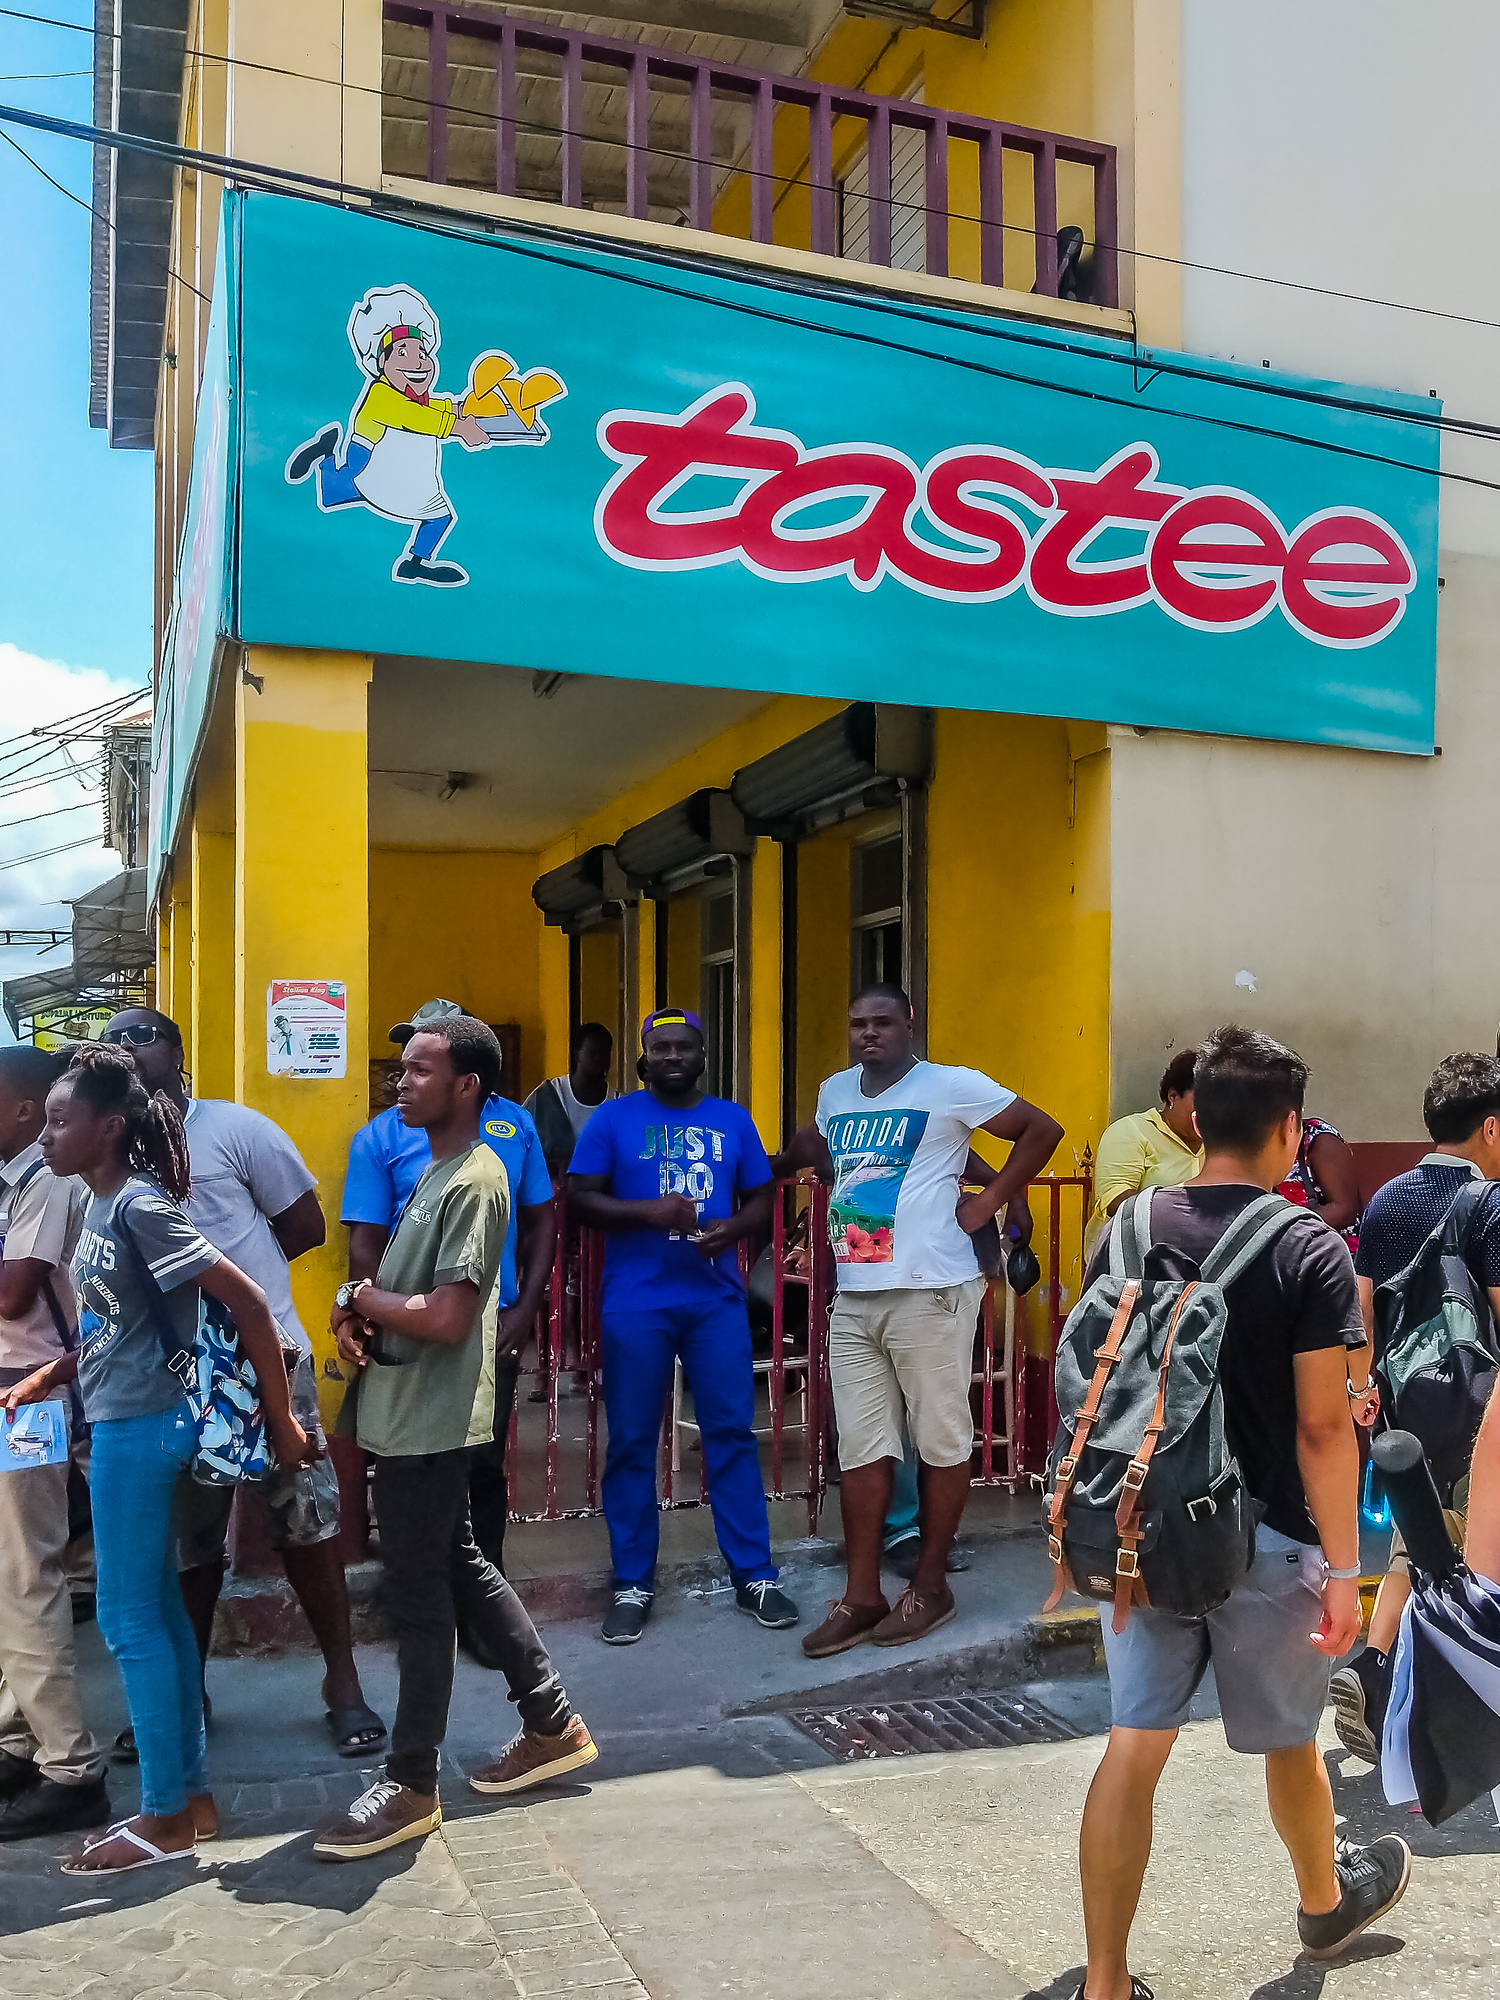 Wondering where to eat in Montego Bay? Check out this list of local picks including Tastee Patties, considered to have some of the best best patties in Jamaica.